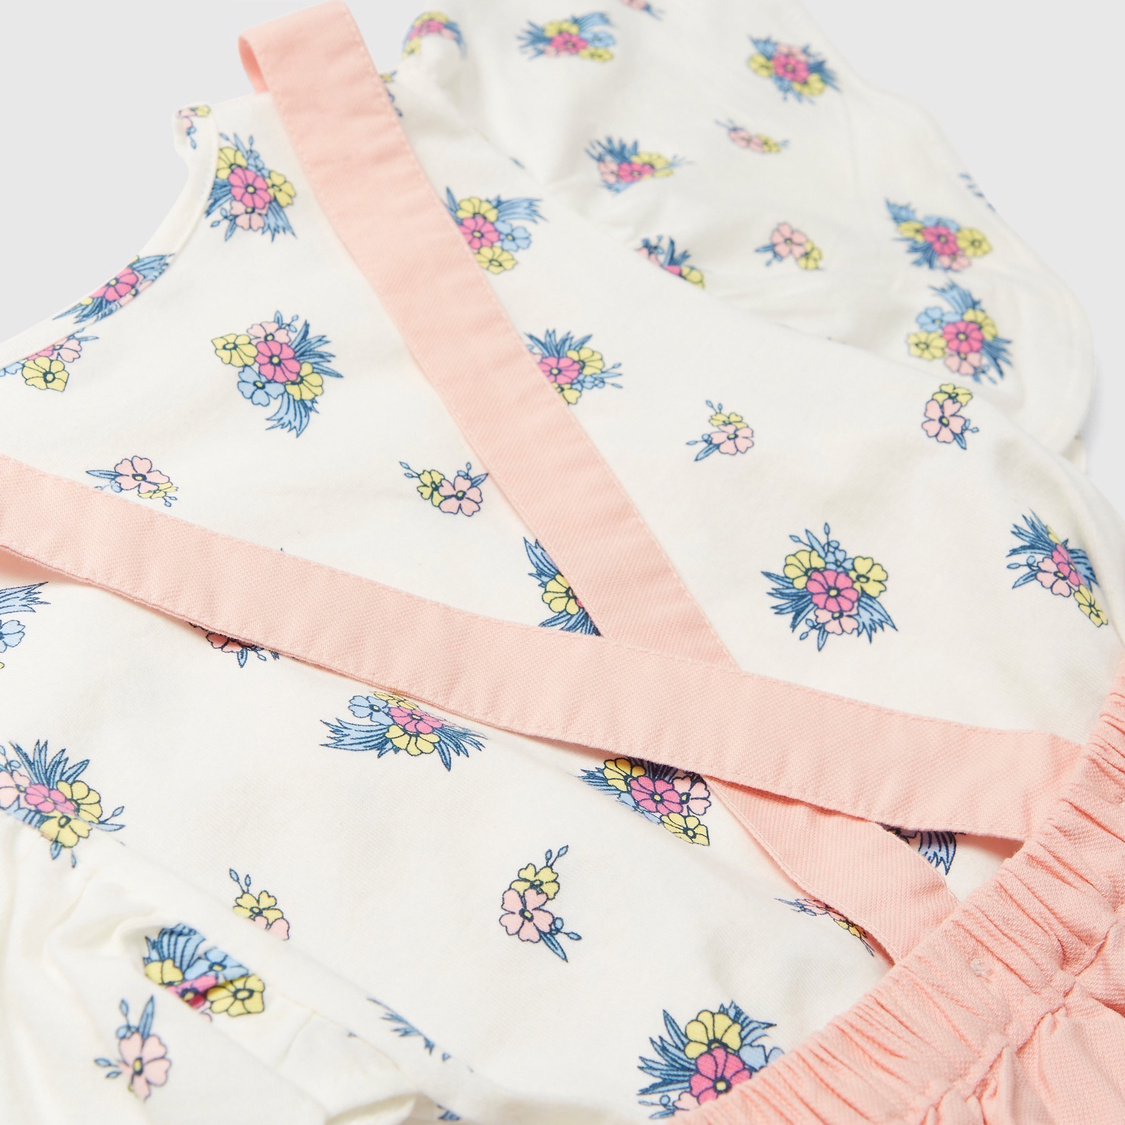 All-Over Floral Print T-shirt and Pinafore Skirt Set